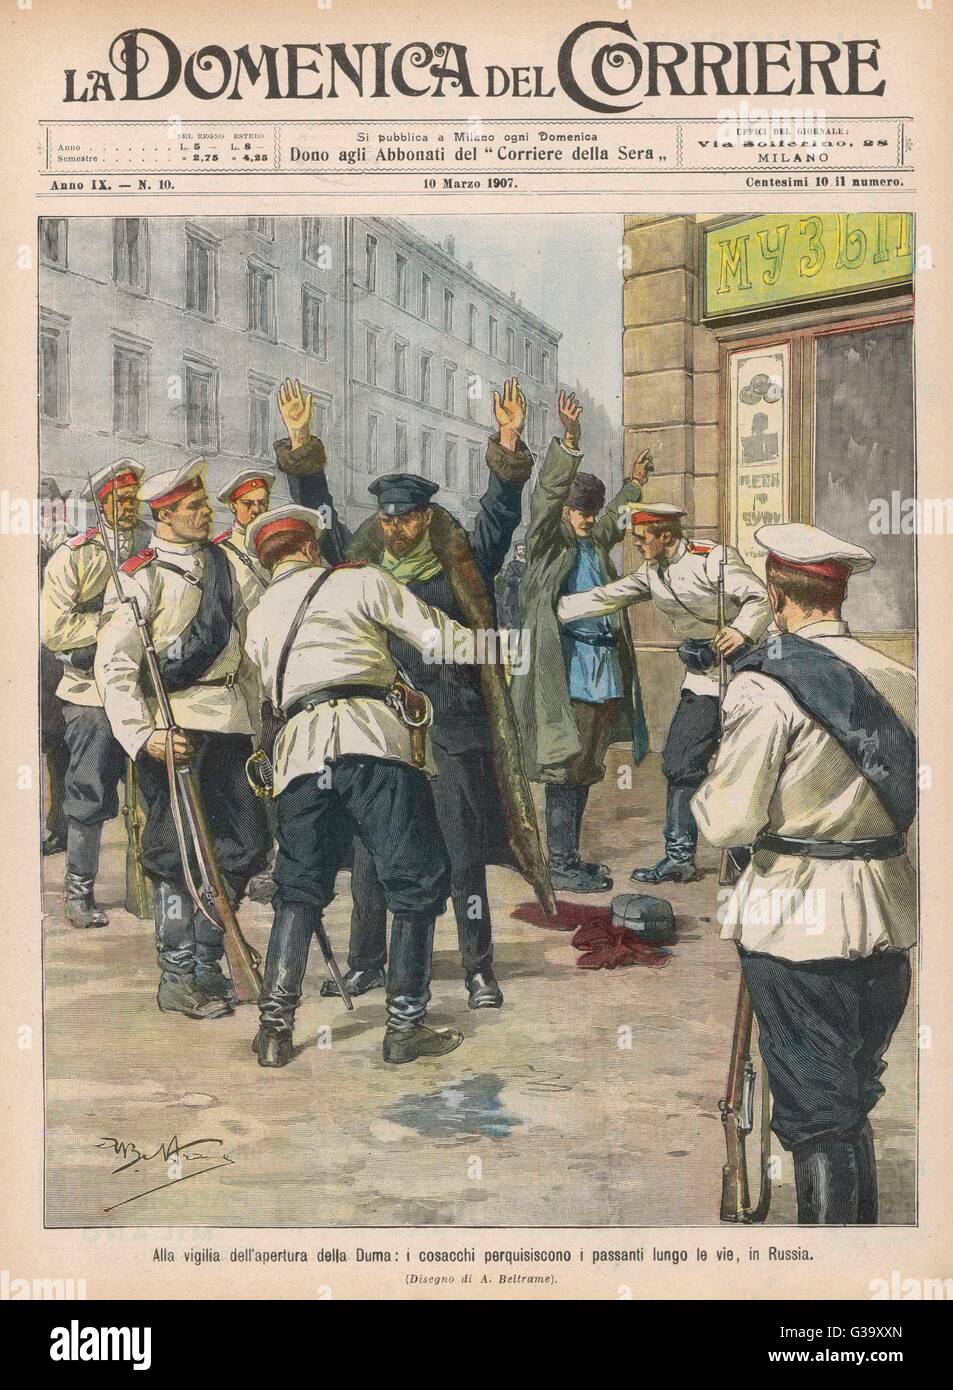 In St Petersburg, passers-by  are searched for bombs and  other weapons.        Date: 1907 - Stock Image